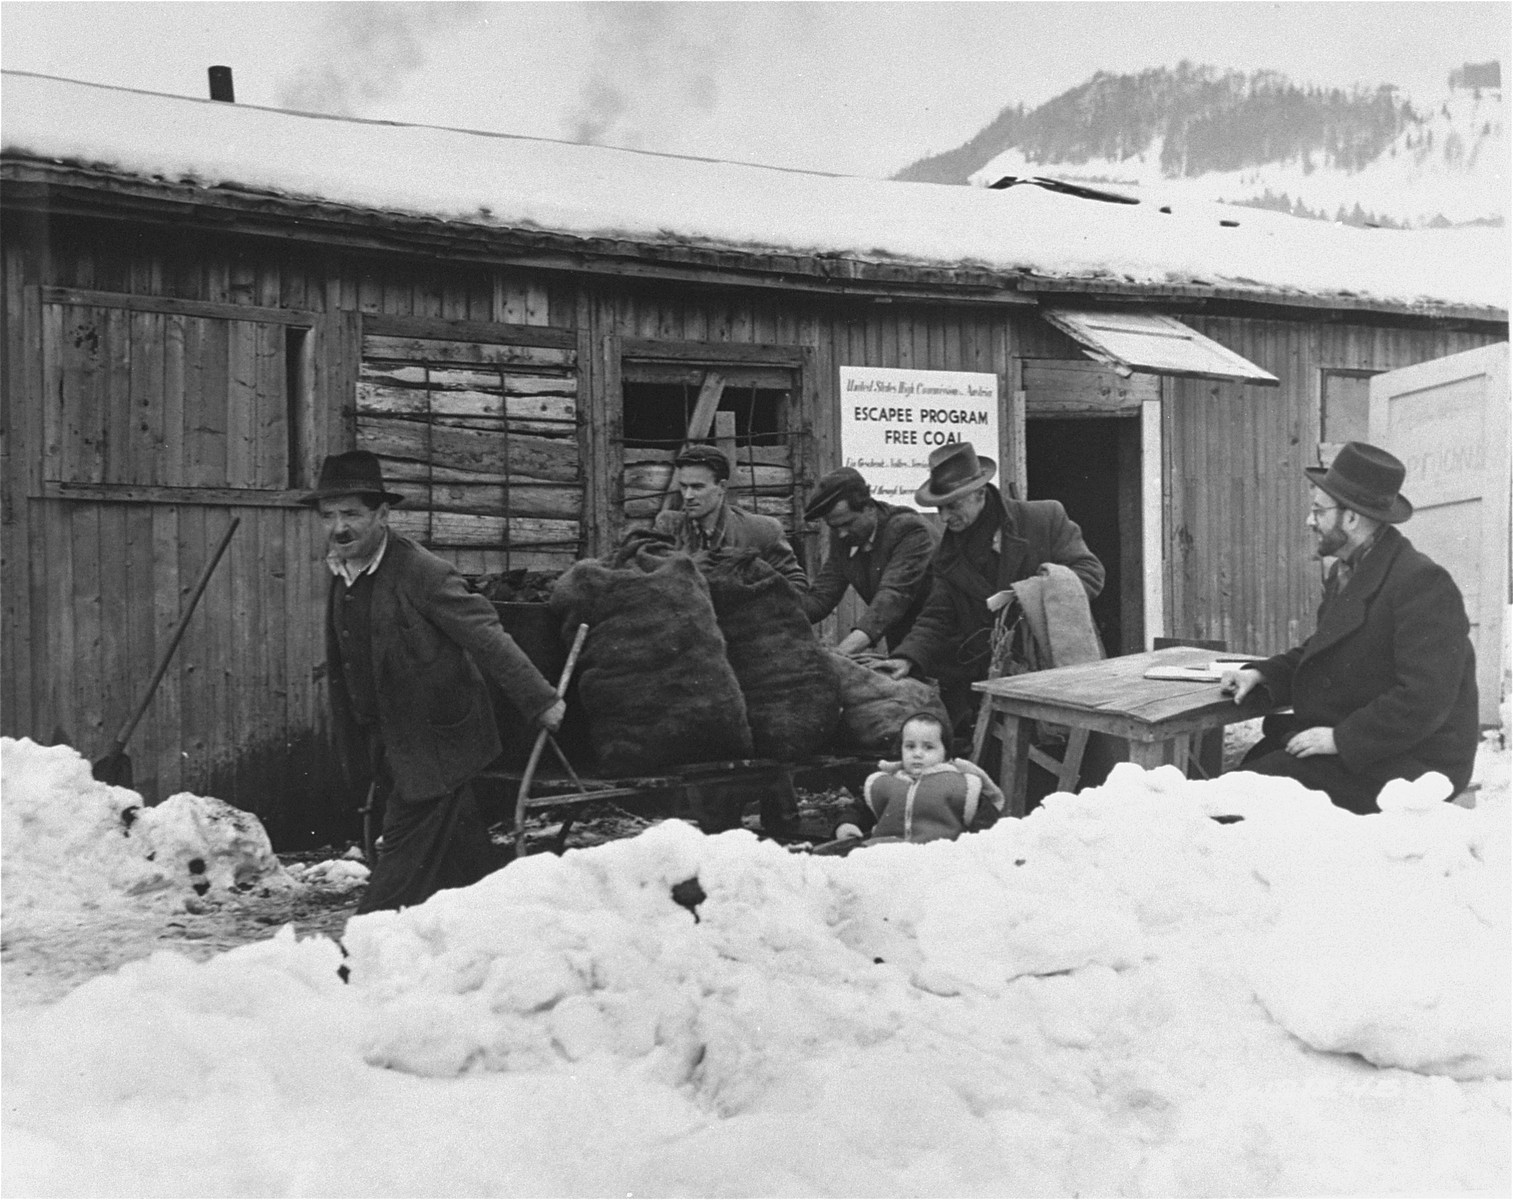 Coal is delivered to the Hallein displaced persons camp near Salzburg.  The shipment of coal was provided by President Truman's Escape Program.  Moses Kestenbaum, distribution supervisor, oversees the delivery.